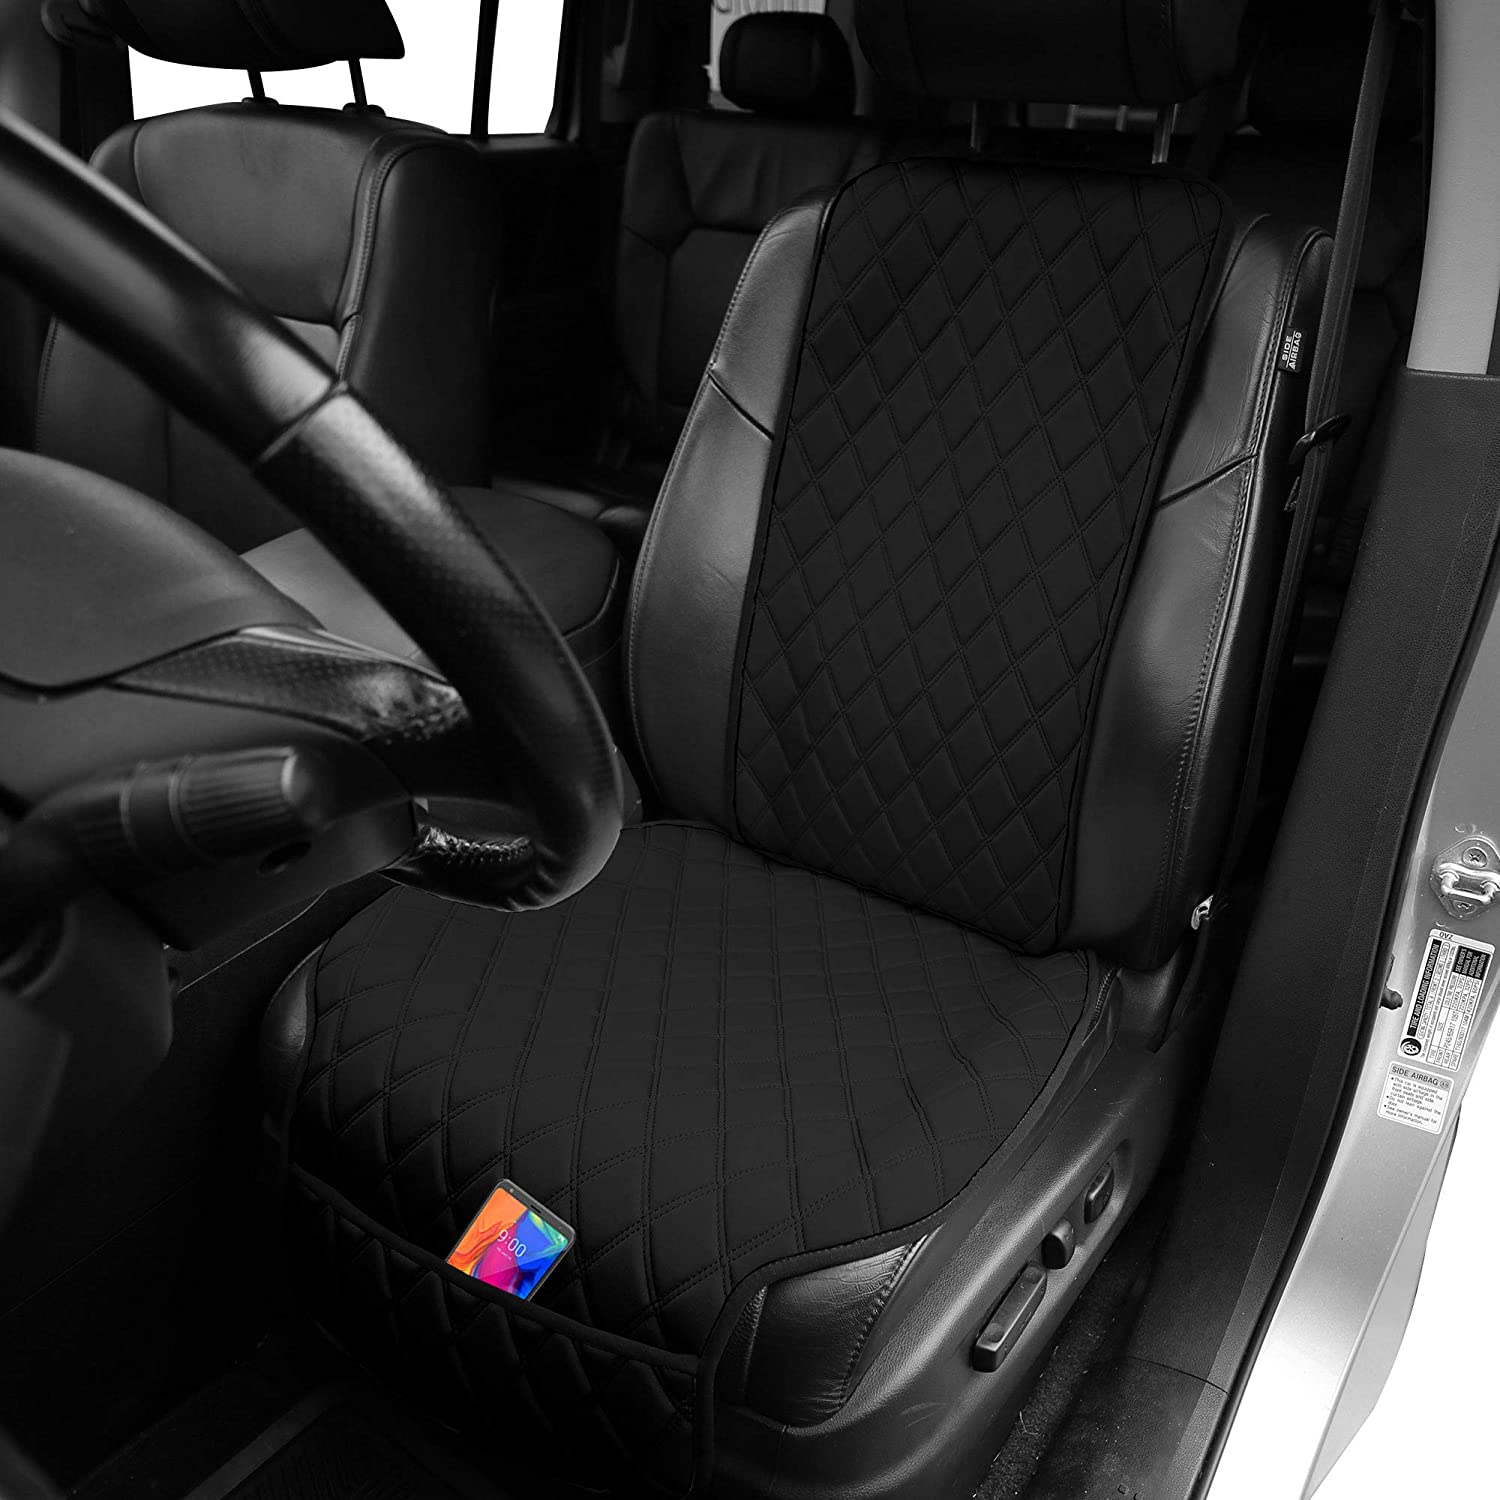 FH Group Car Front Seat Protector Water Resistant Air Bag Compatible, (One Cover) Neo Supreme Luxury Diamond Design Universal Seat Covers for Cars, Auto, Trucks, Vans & SUVs (Solid Black) - w. Gift